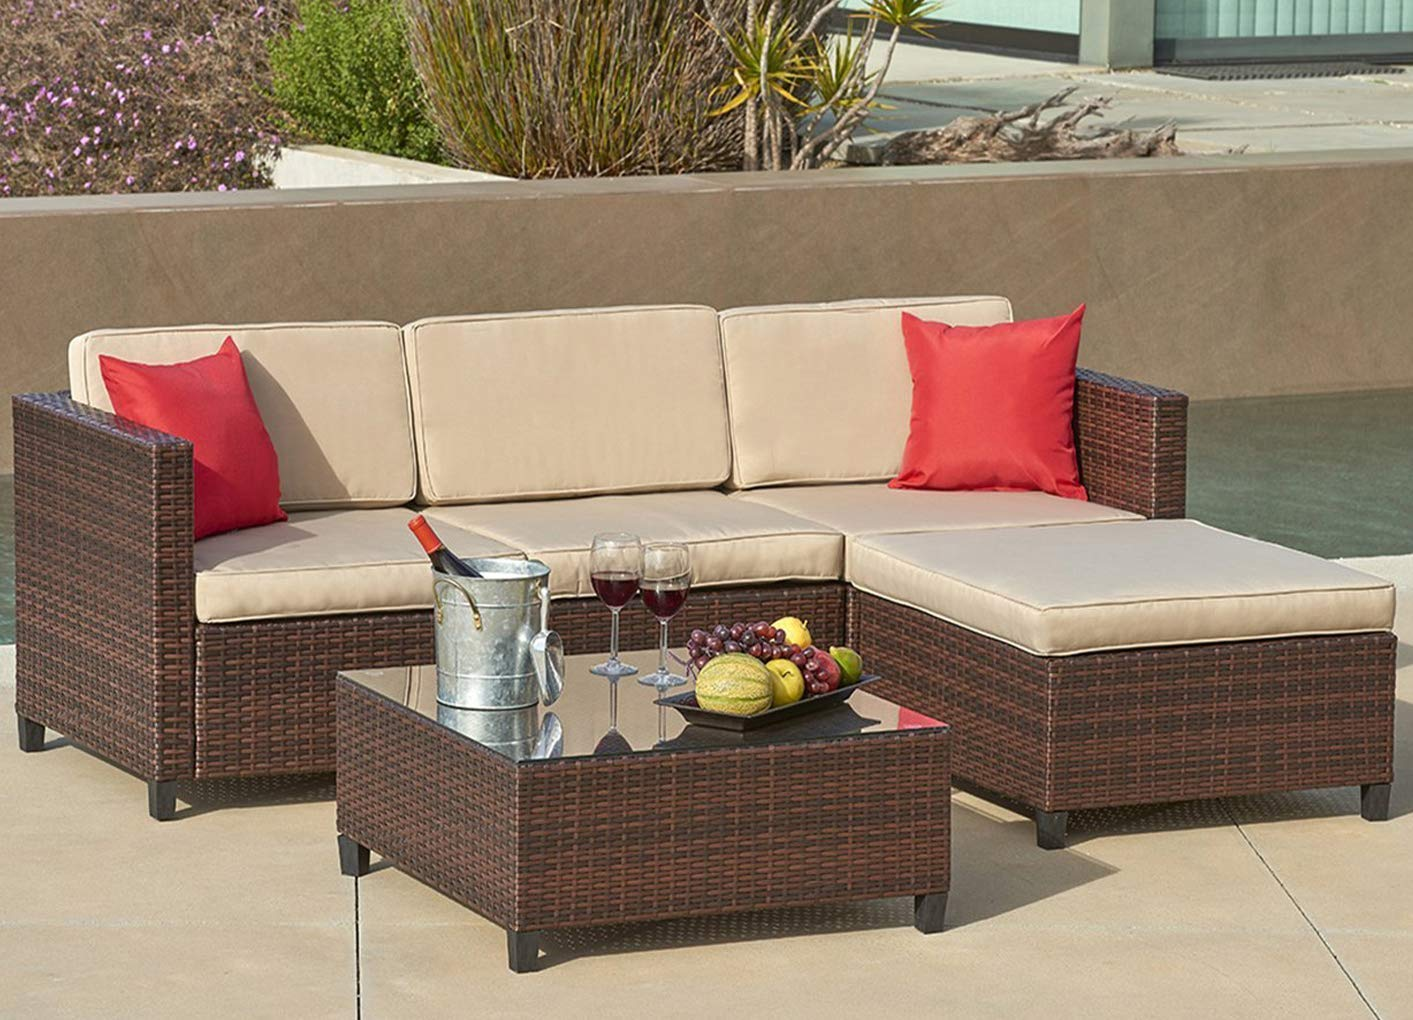 SUNCROWN Outdoor Sectional Sofa (5-Piece Set) All-Weather ... on 5 Piece Sectional Patio Set id=14659